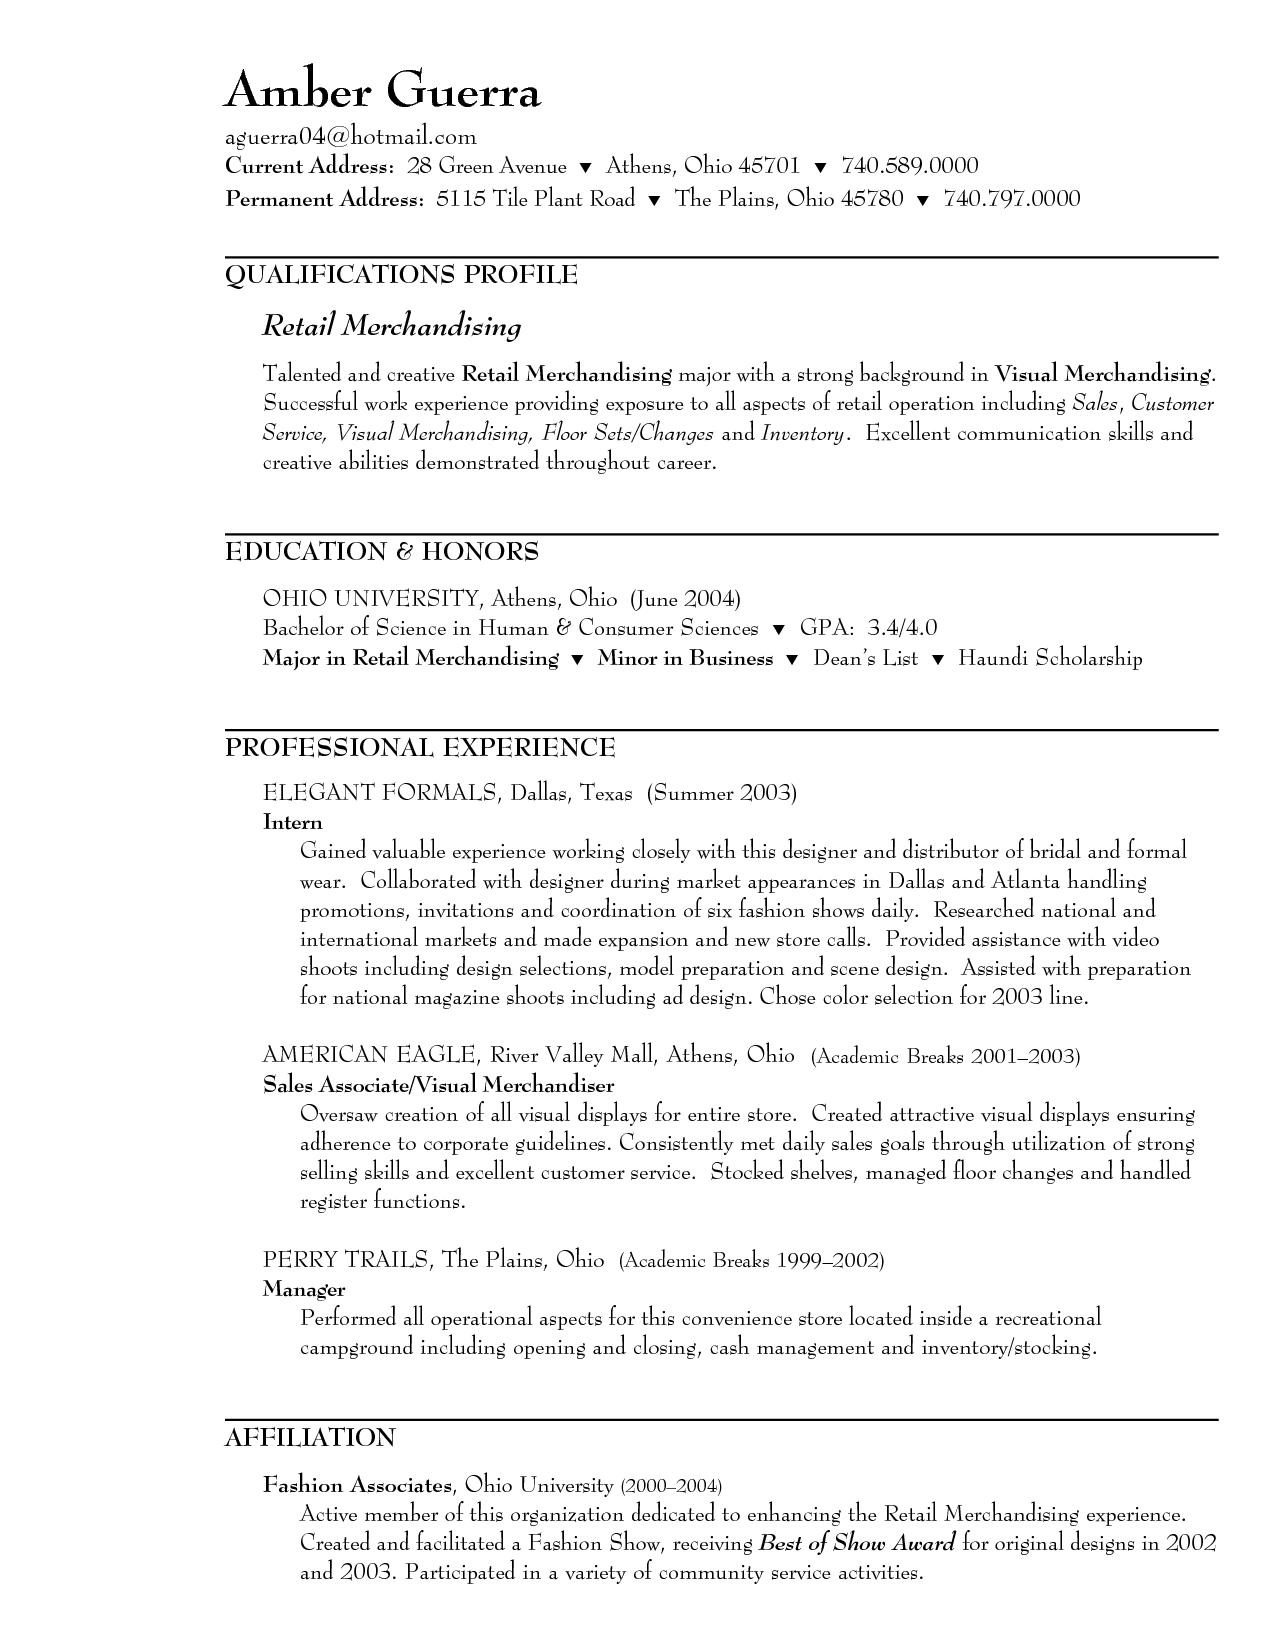 Resume for a clothing store